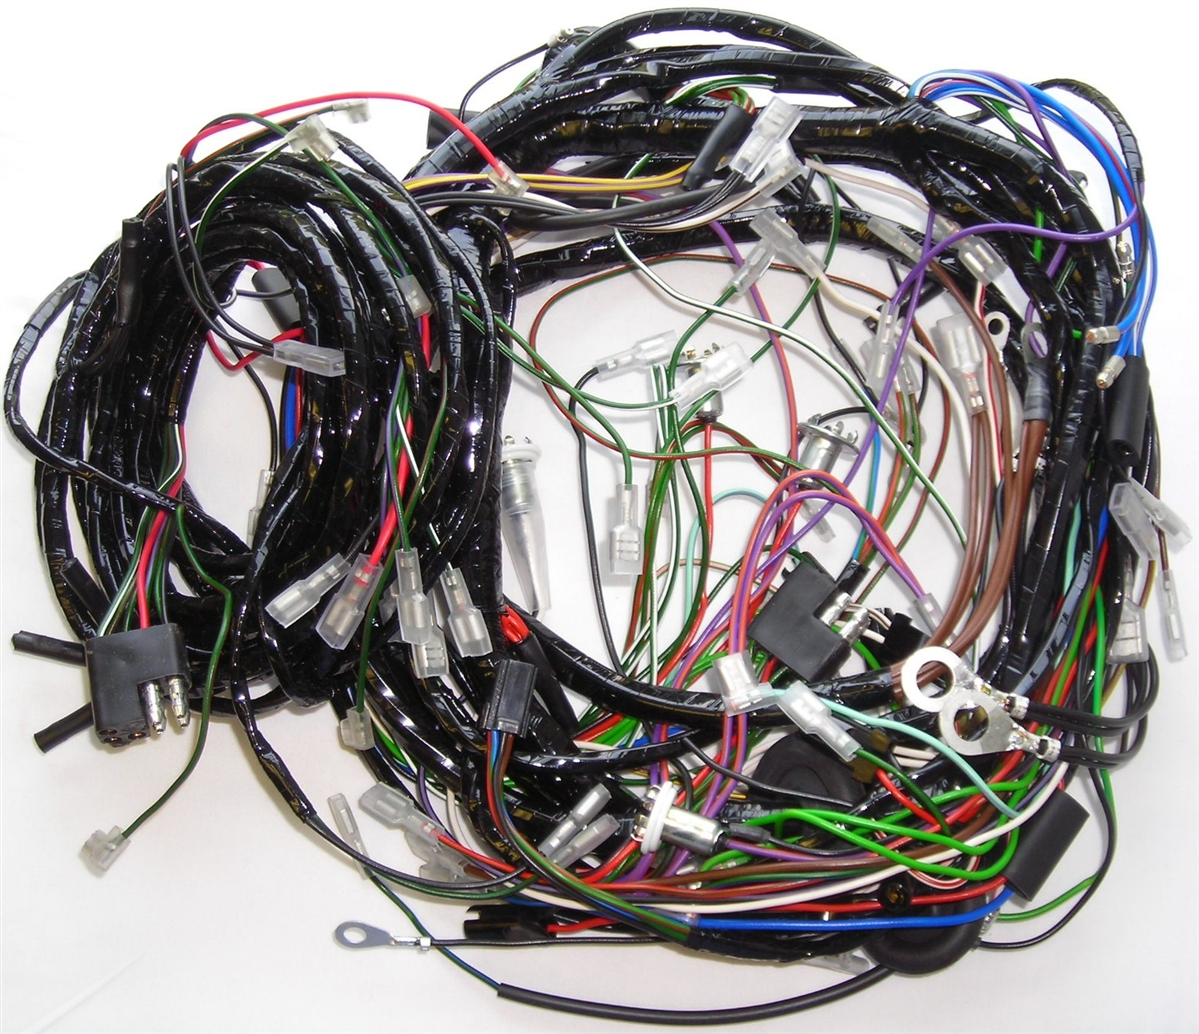 triumph spitfire wiring harness johnson outboard year model identification main and body harnesses mk 4